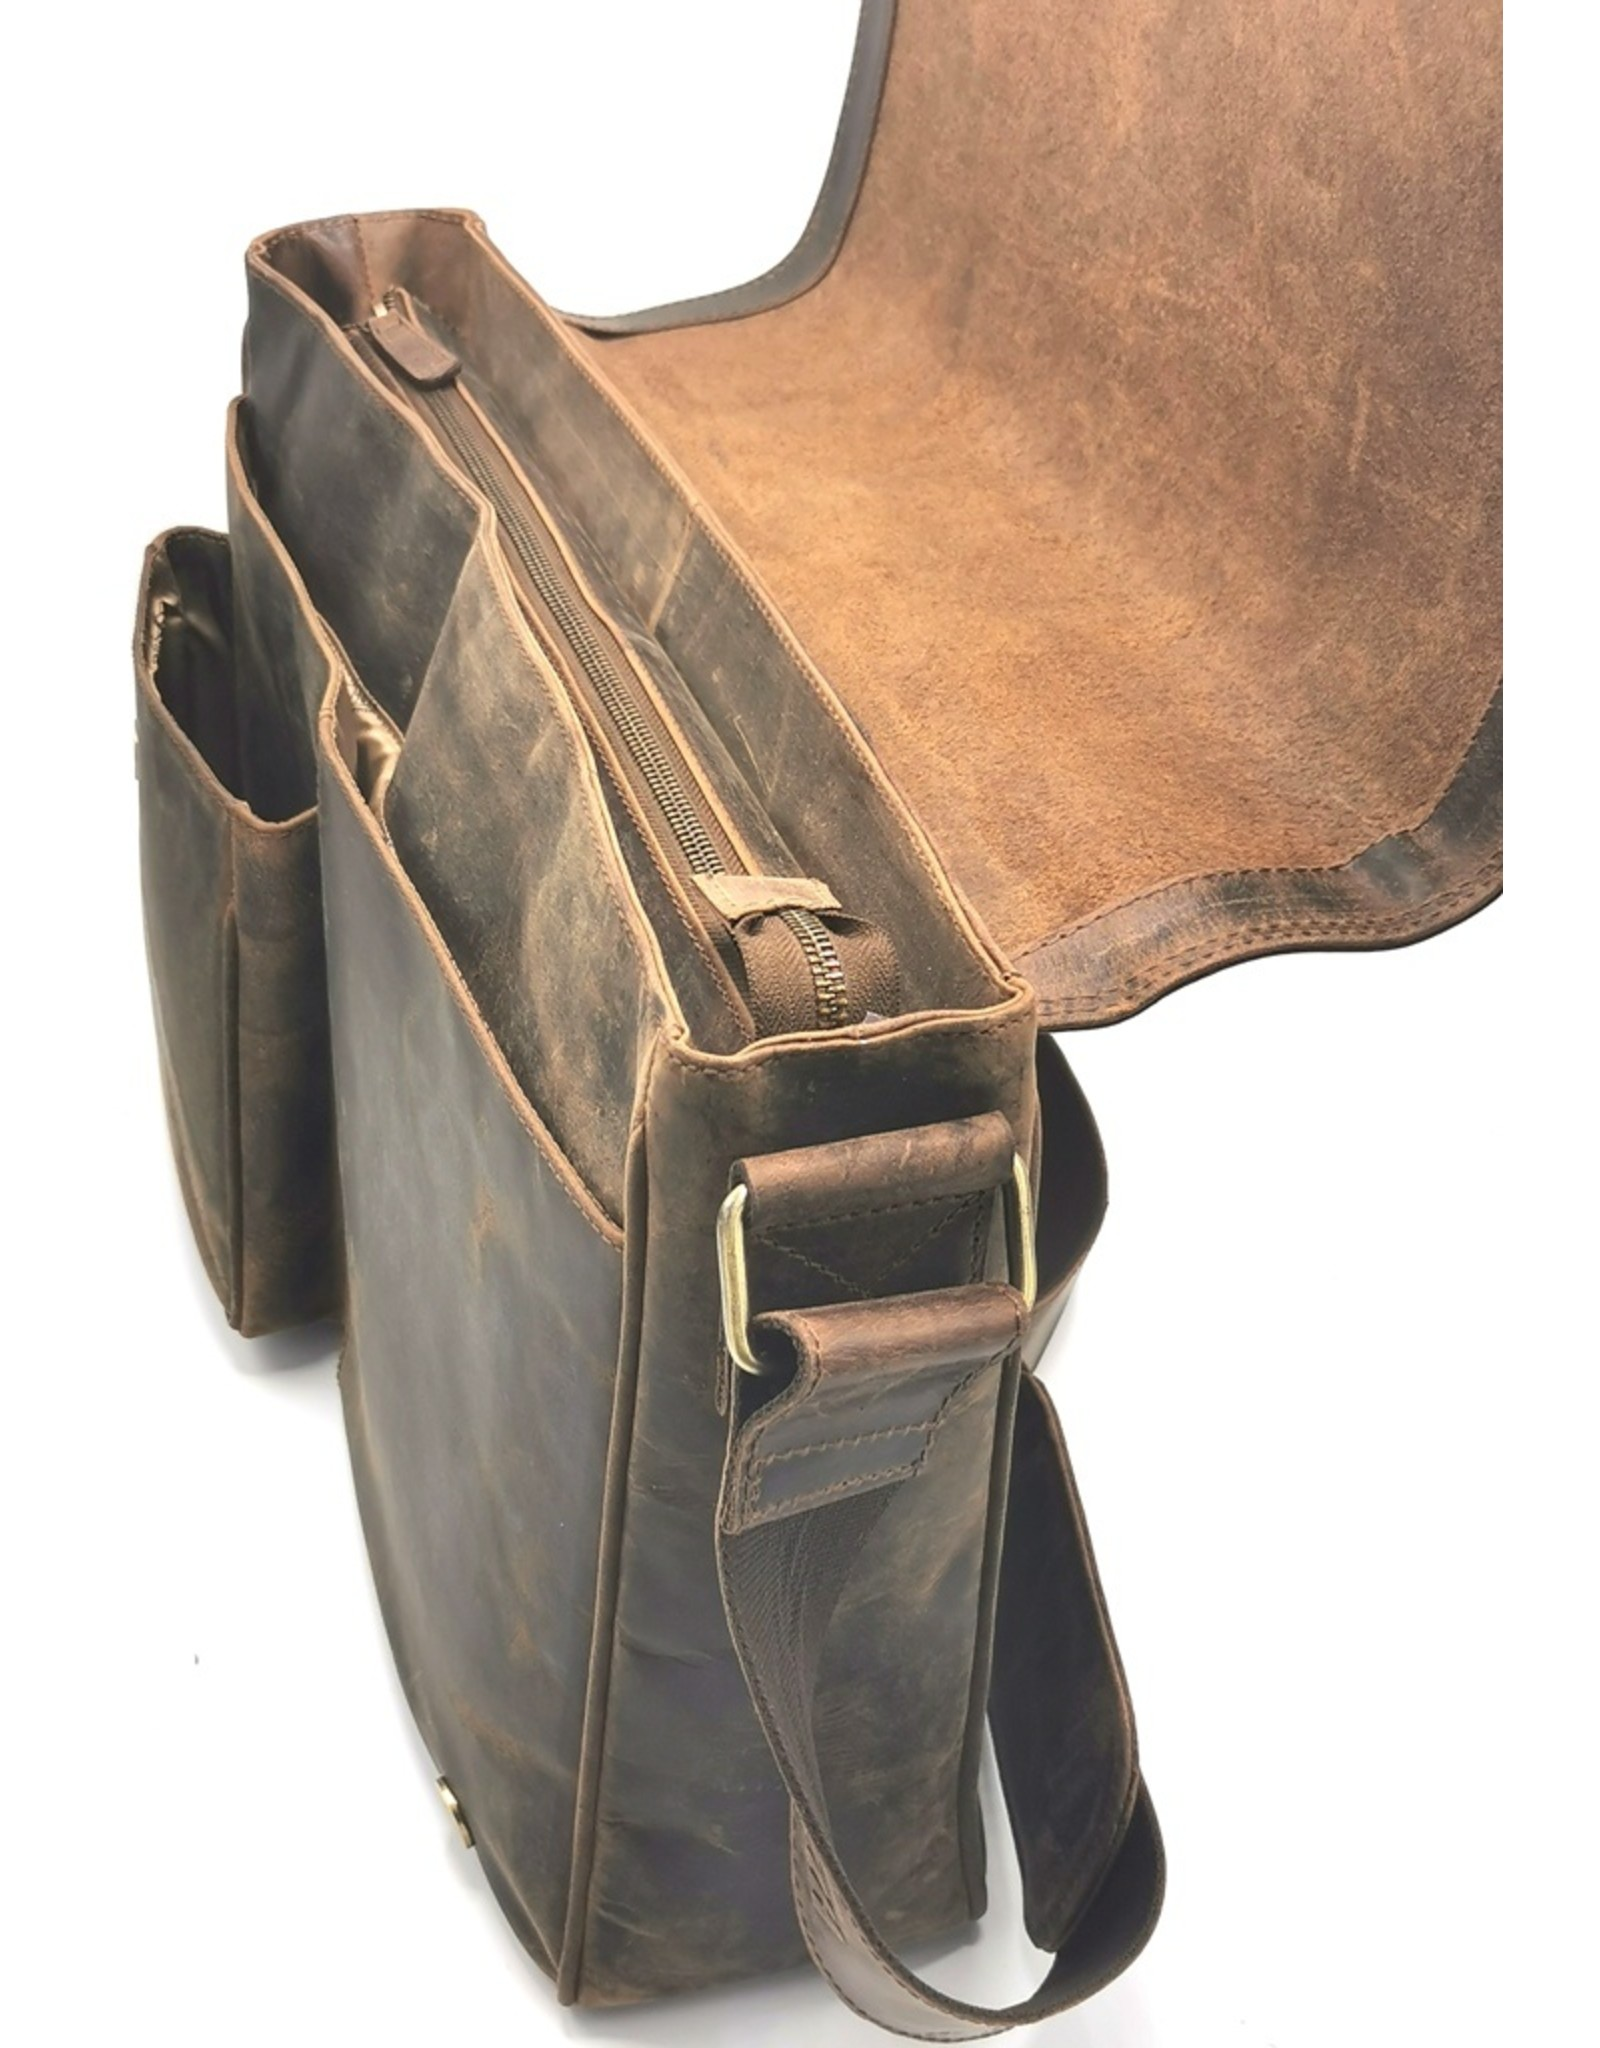 Hunters Leather Workbags and Leather Laptop Bags - Hunters Laptop Bag Buffalo Leather XL size